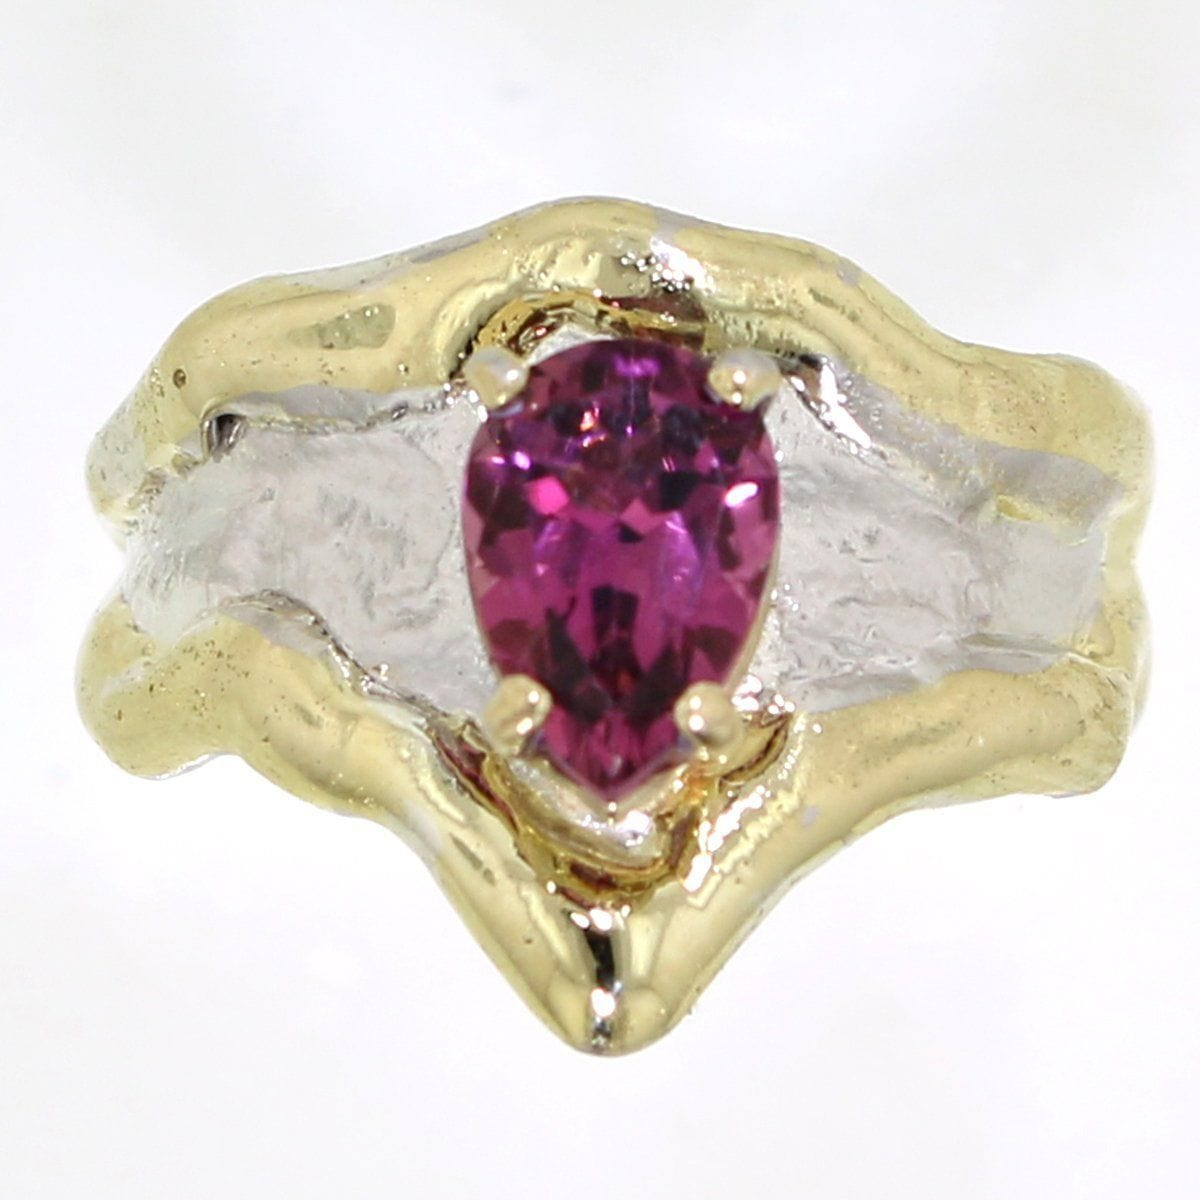 14K Gold & Crystalline Silver Pink Tourmaline Ring - 31965-Fusion Designs-Renee Taylor Gallery